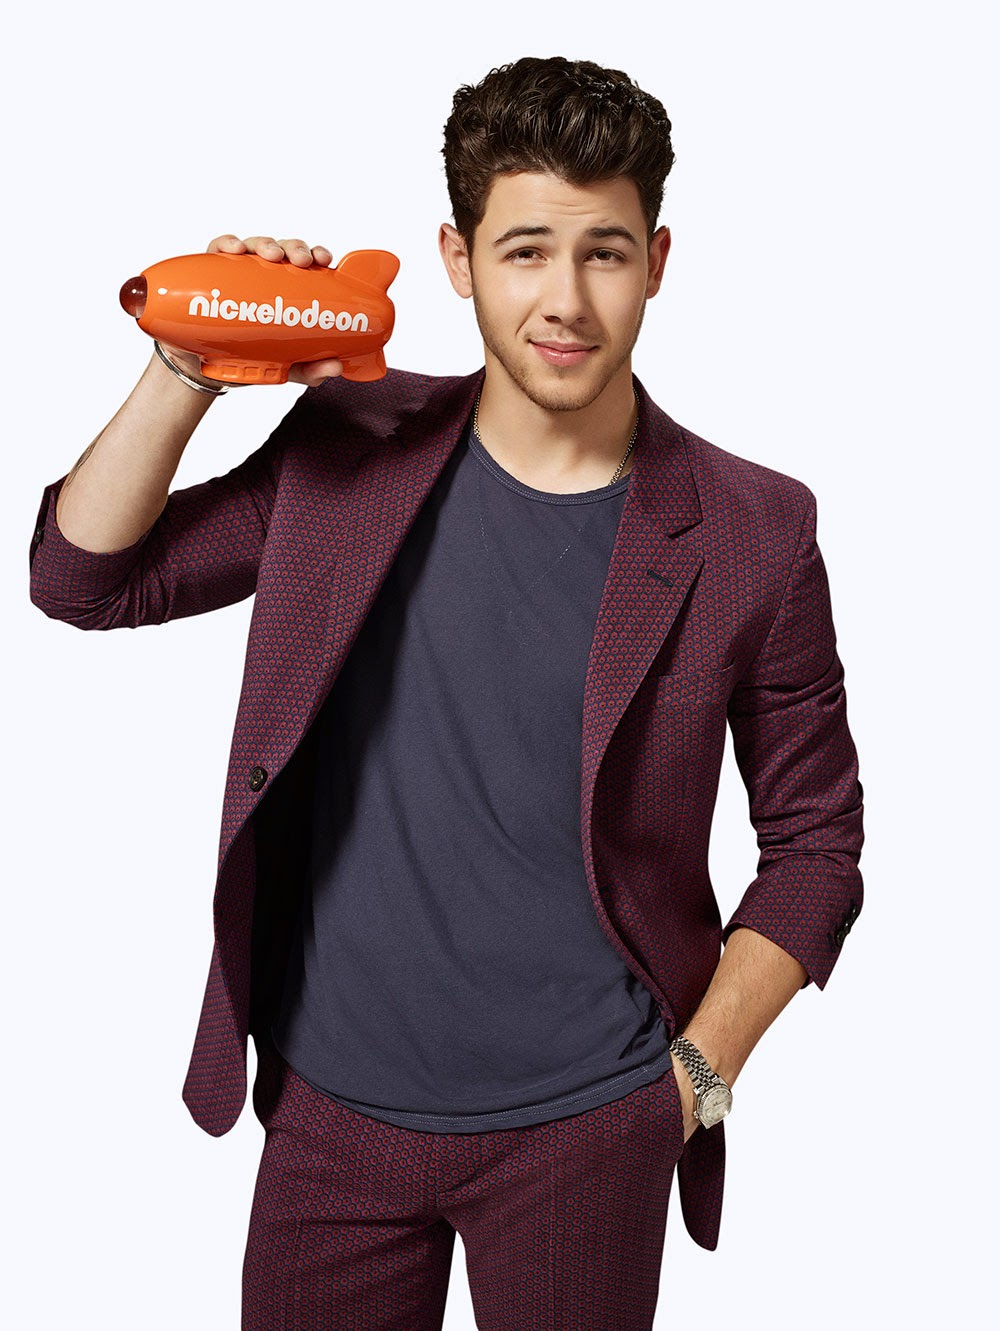 Nickelodeon's 28th Annual Kids' Choice Awards Coming March 28th  via www.productreviewmom.com